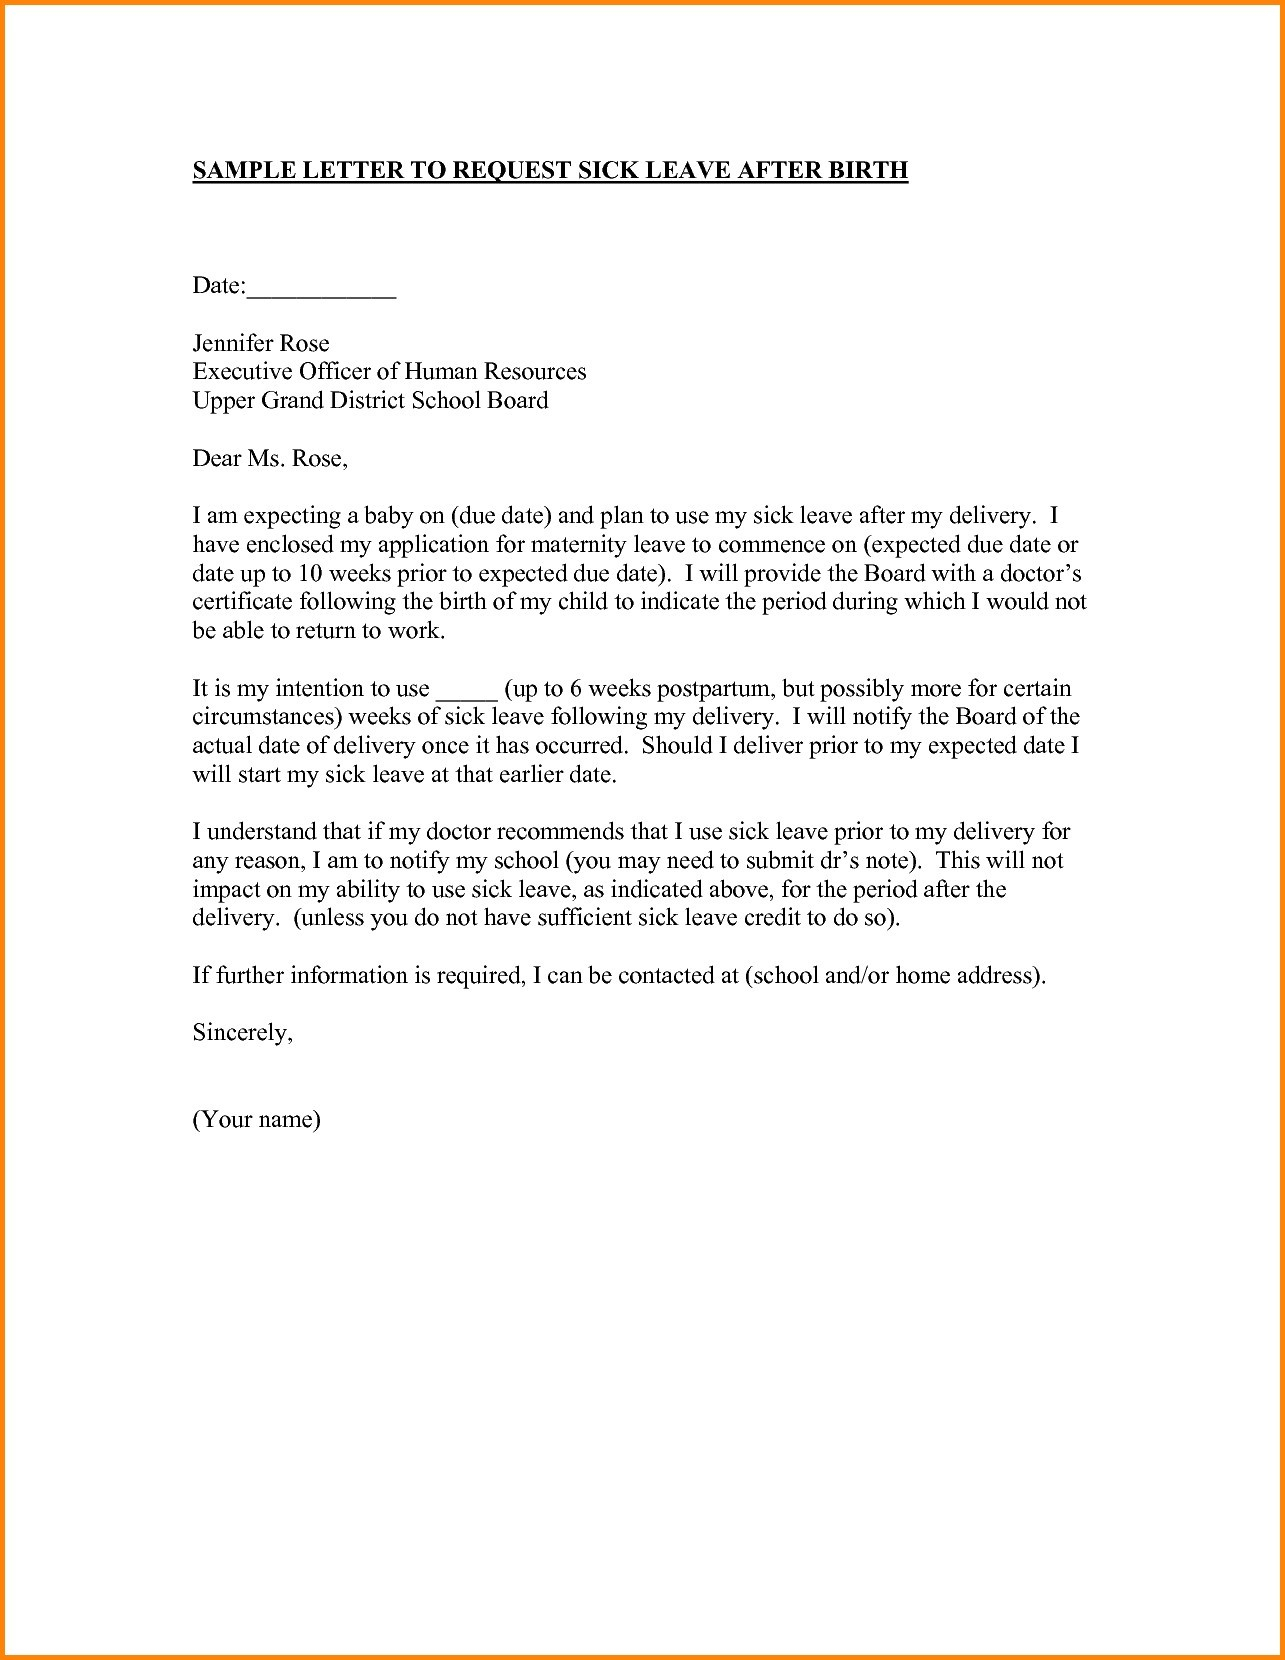 Maternity return to work letter from employer template collection maternity return to work letter from employer template free example letter letter template informing employer spiritdancerdesigns Images